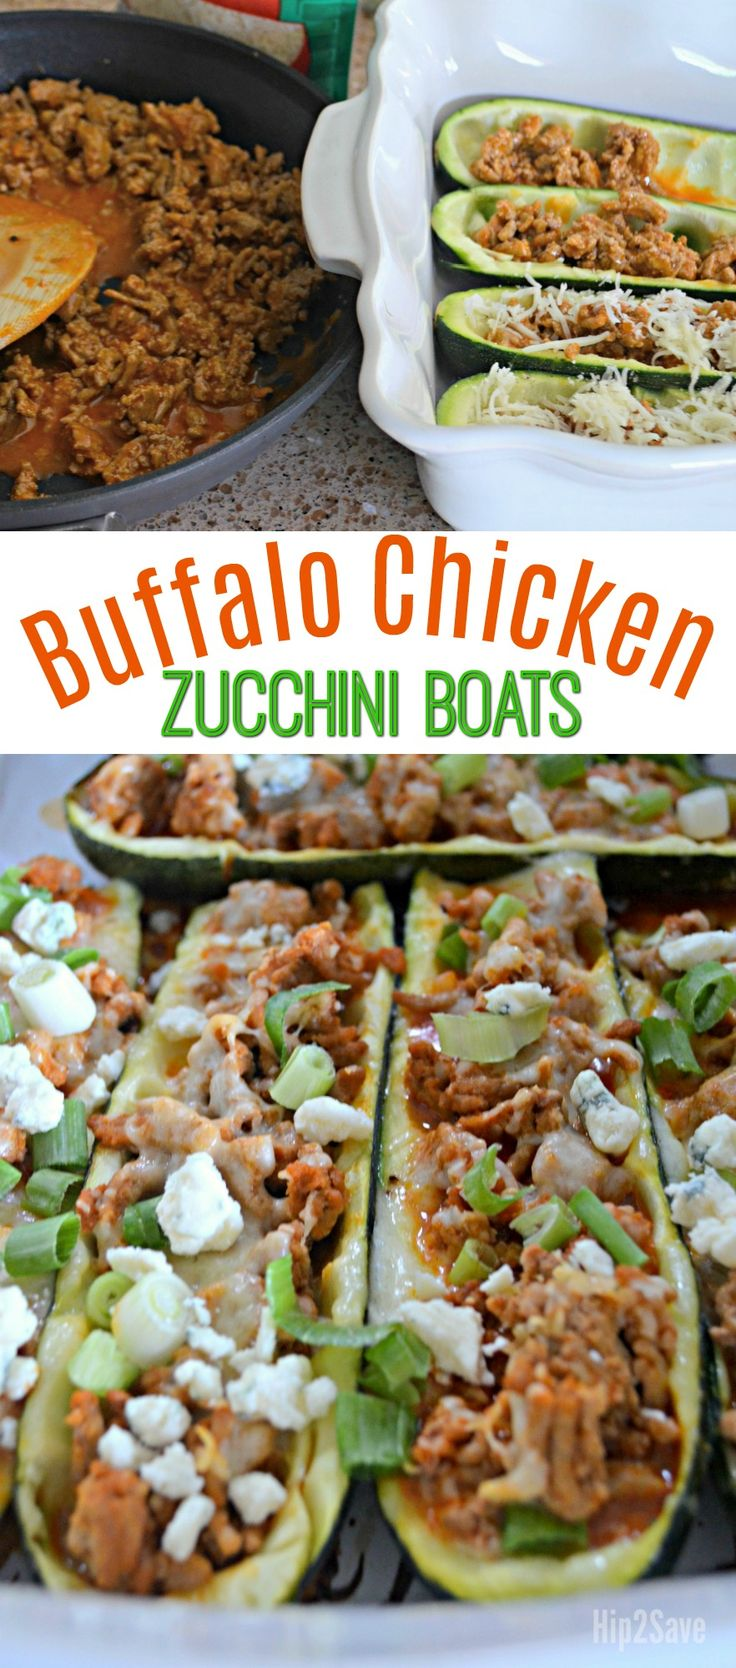 You'll definitely want to add these deliciously satisfying Buffalo Chicken Zucchini Boats to your LOW CARB meal rotation!